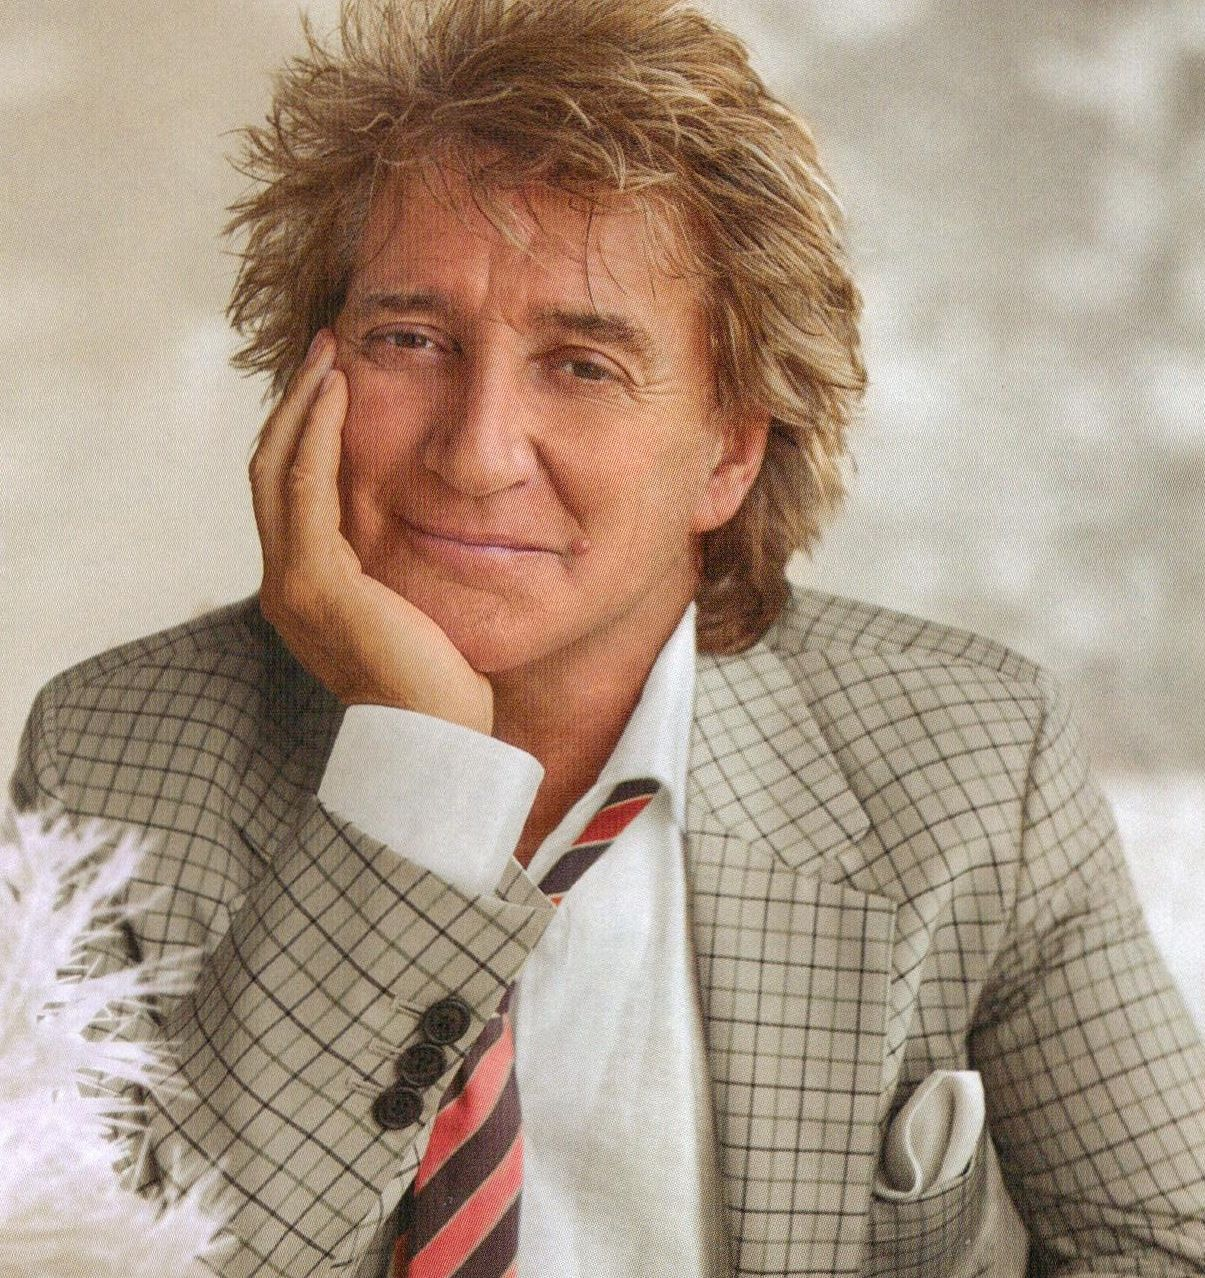 rod stewart | ... OR YULETIDE CLASSIC? | It's All Been Said Before ...